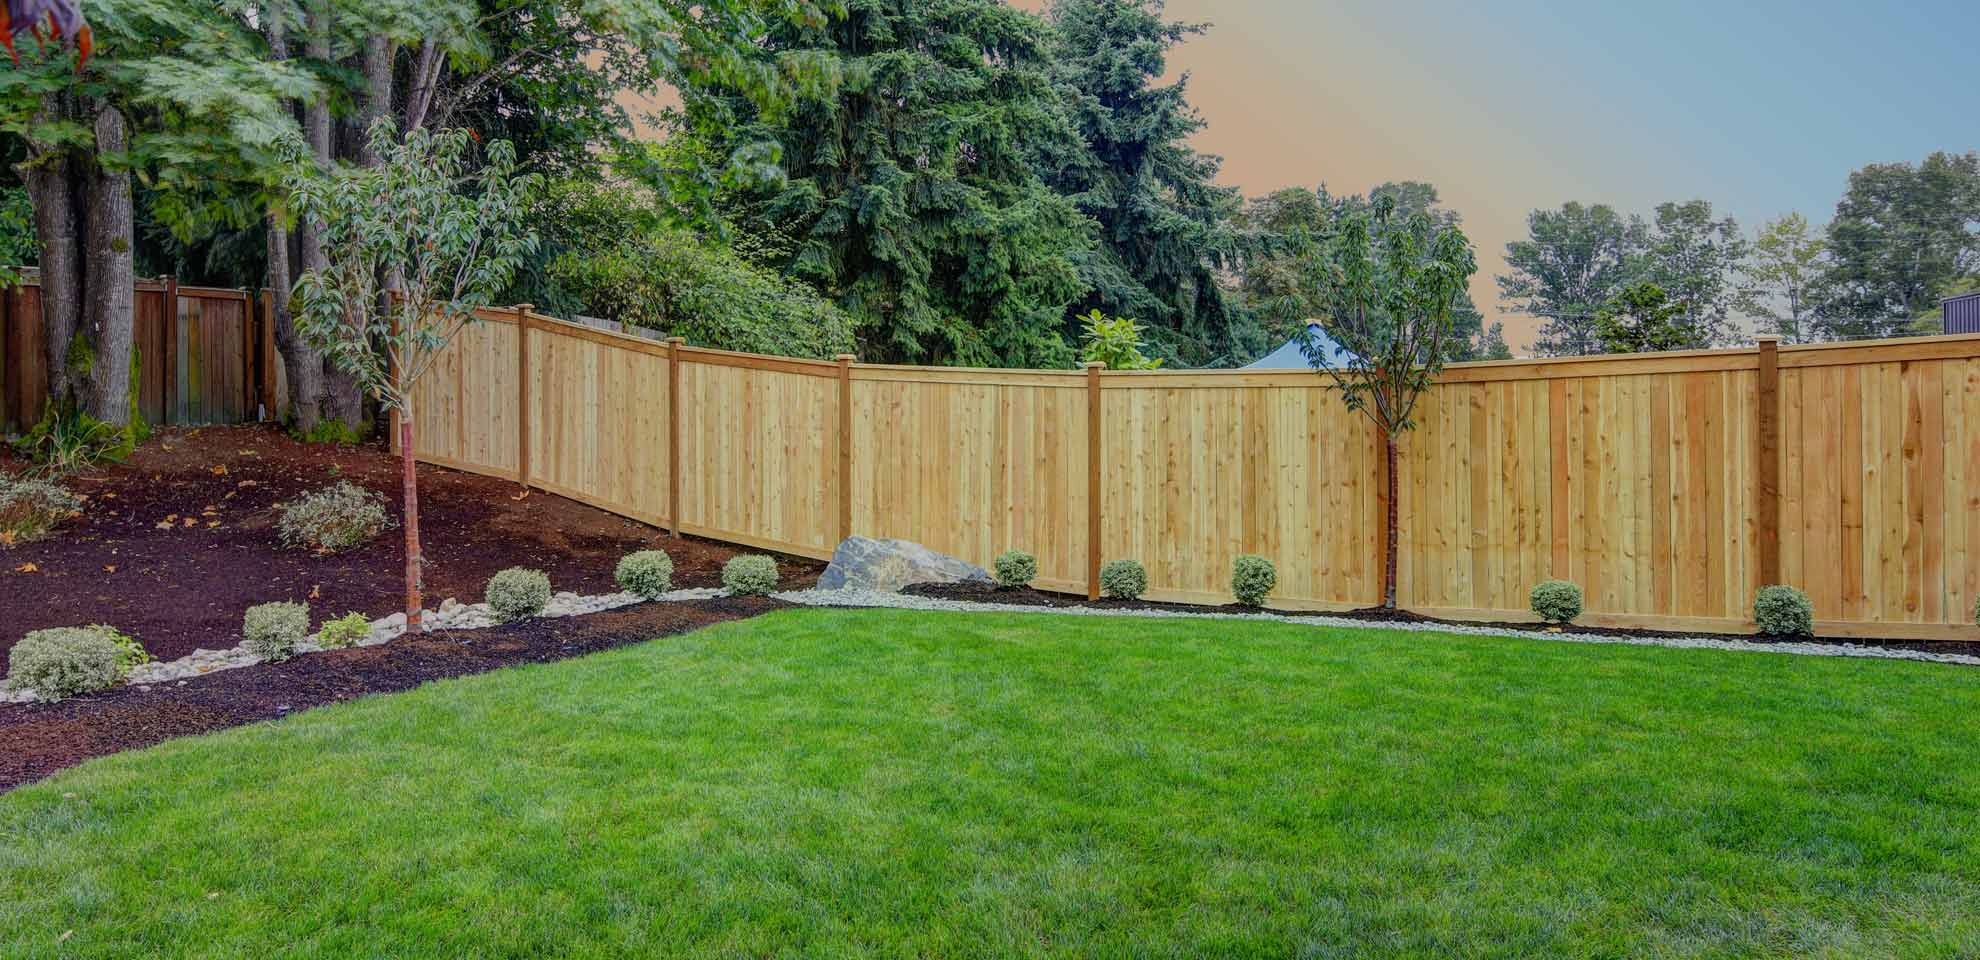 Home Fence All Outdoor Home Improvement Ottawa On intended for Pricing For Fencing For A Backyard